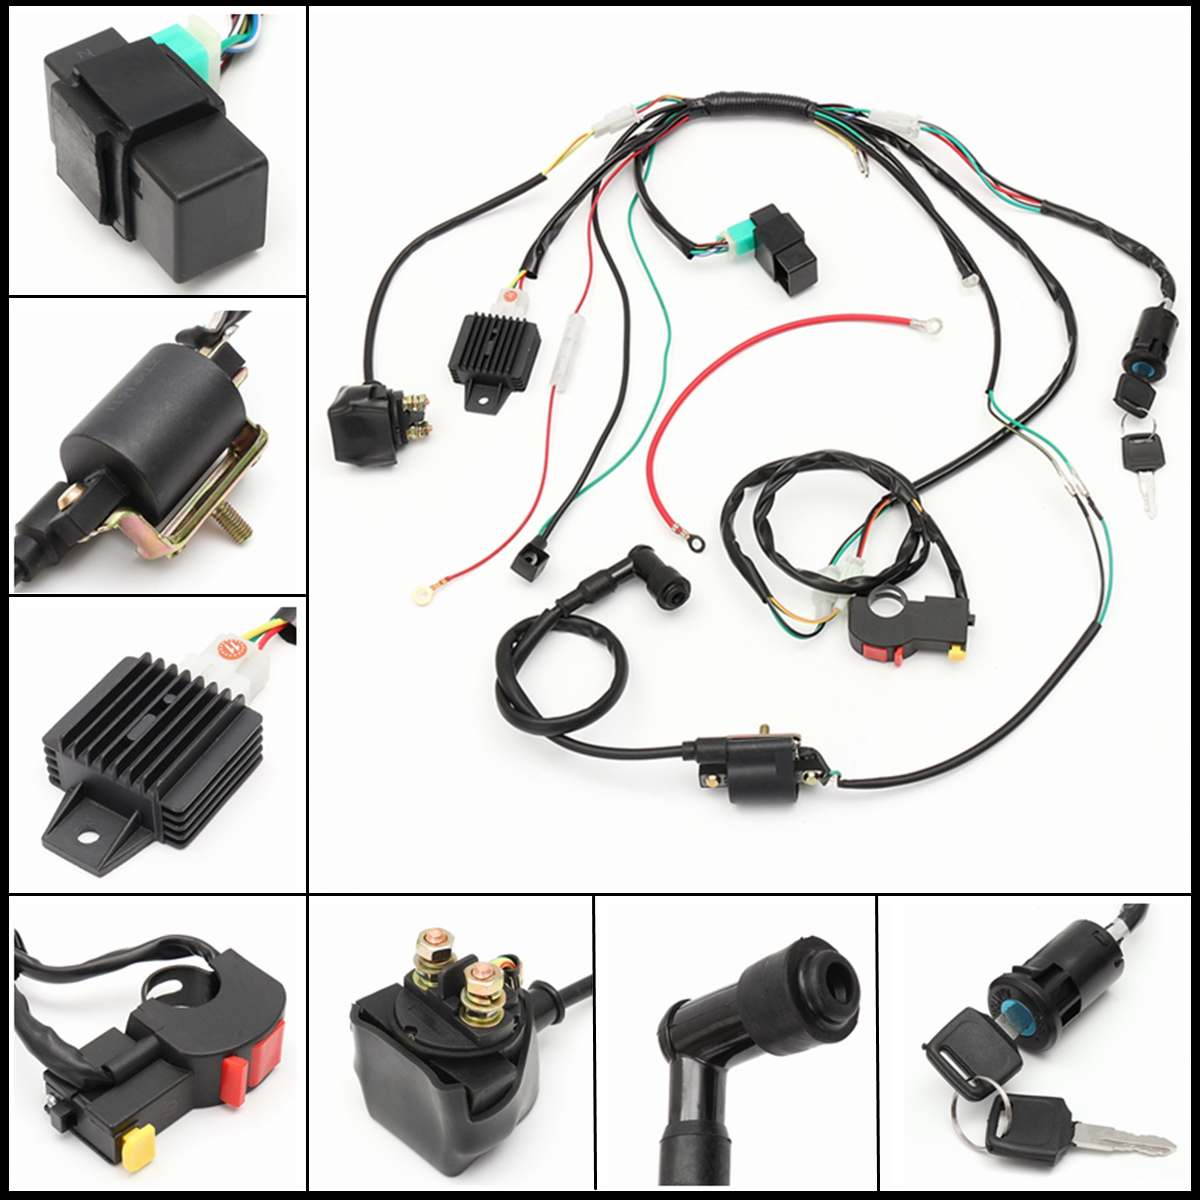 motorcycle cdi wiring harness loom solenoid ignition coil rectifier for  50cc 110cc 125cc pit quad dirt